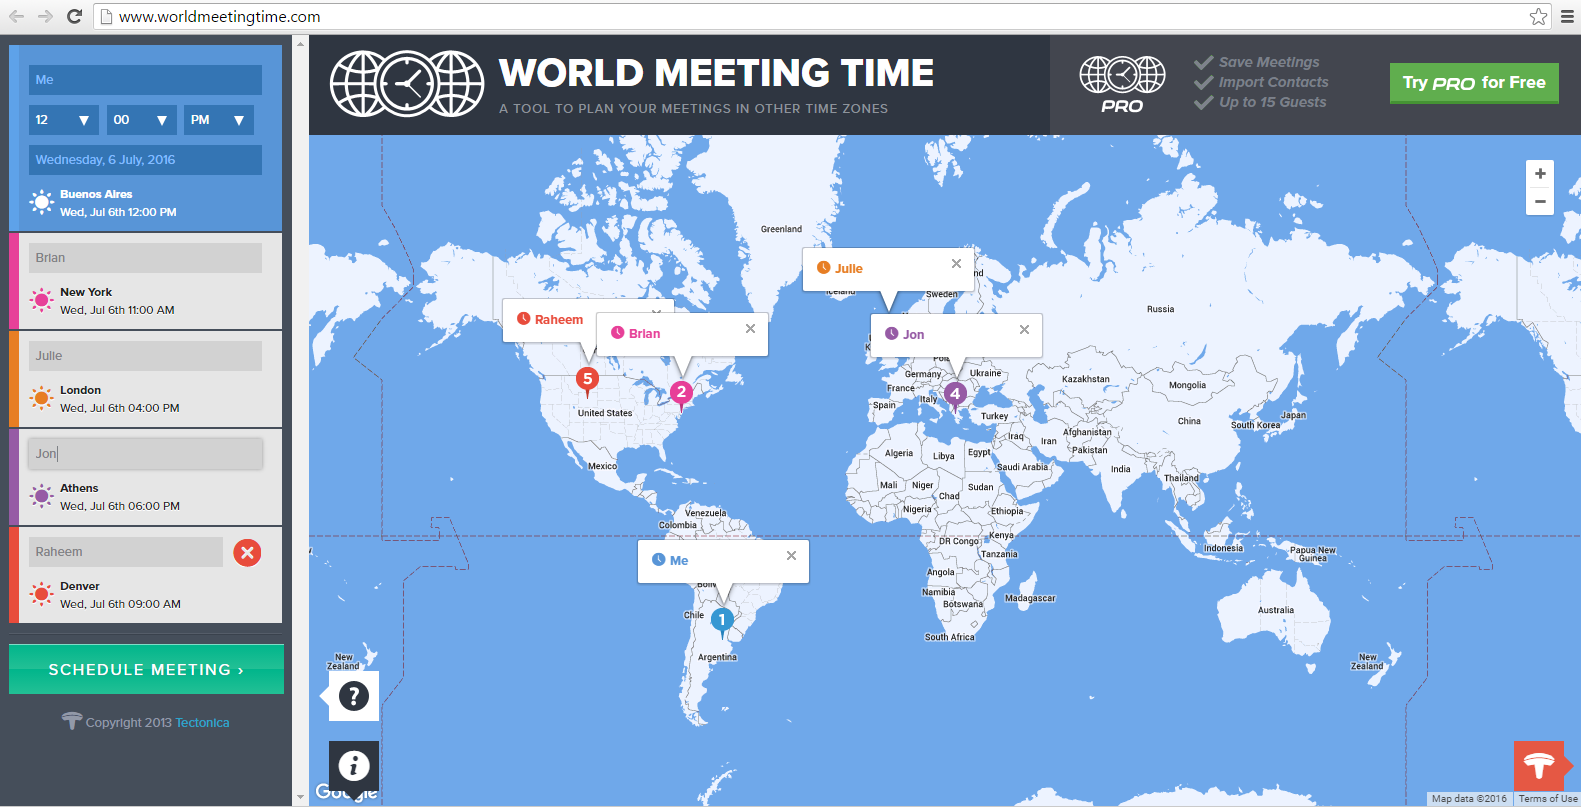 The difficulties of going international: How World Meeting Time can help